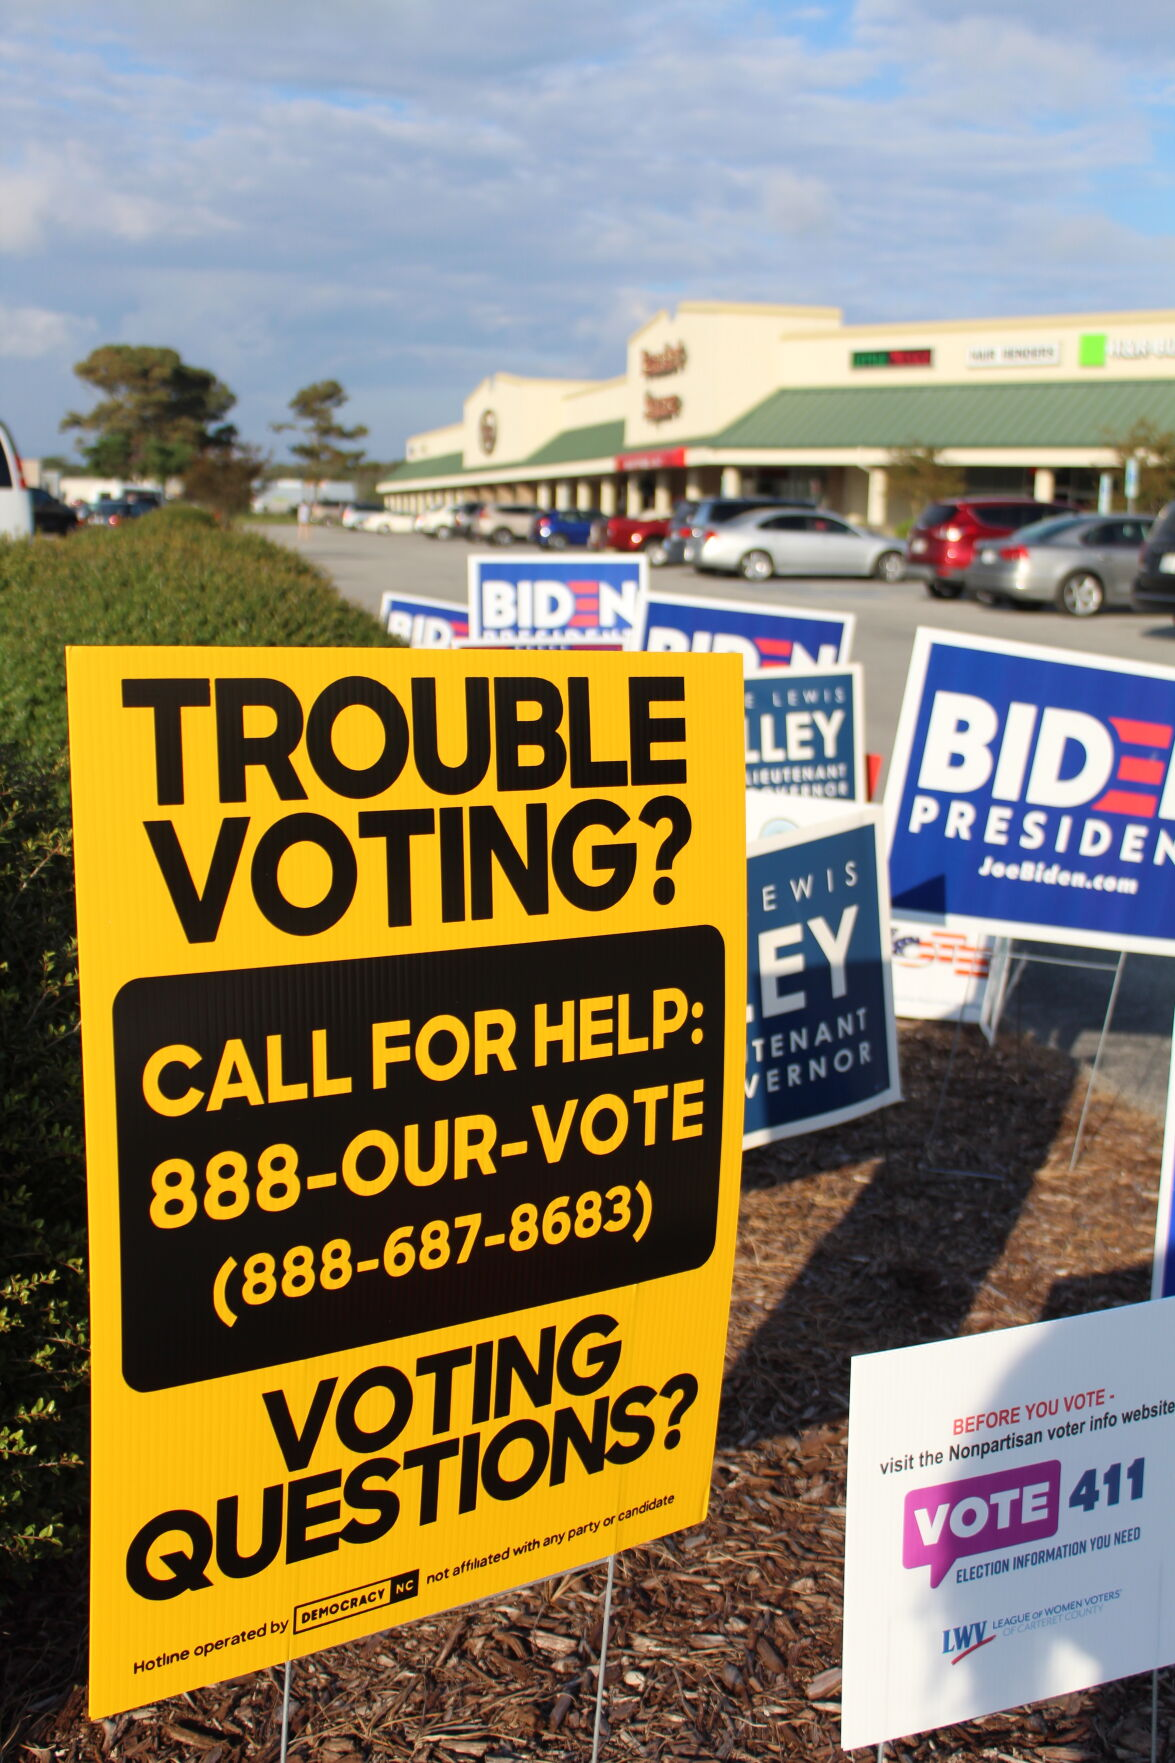 With capacity limits, cleaning procedures ready, officials to open early voting sites Thursday